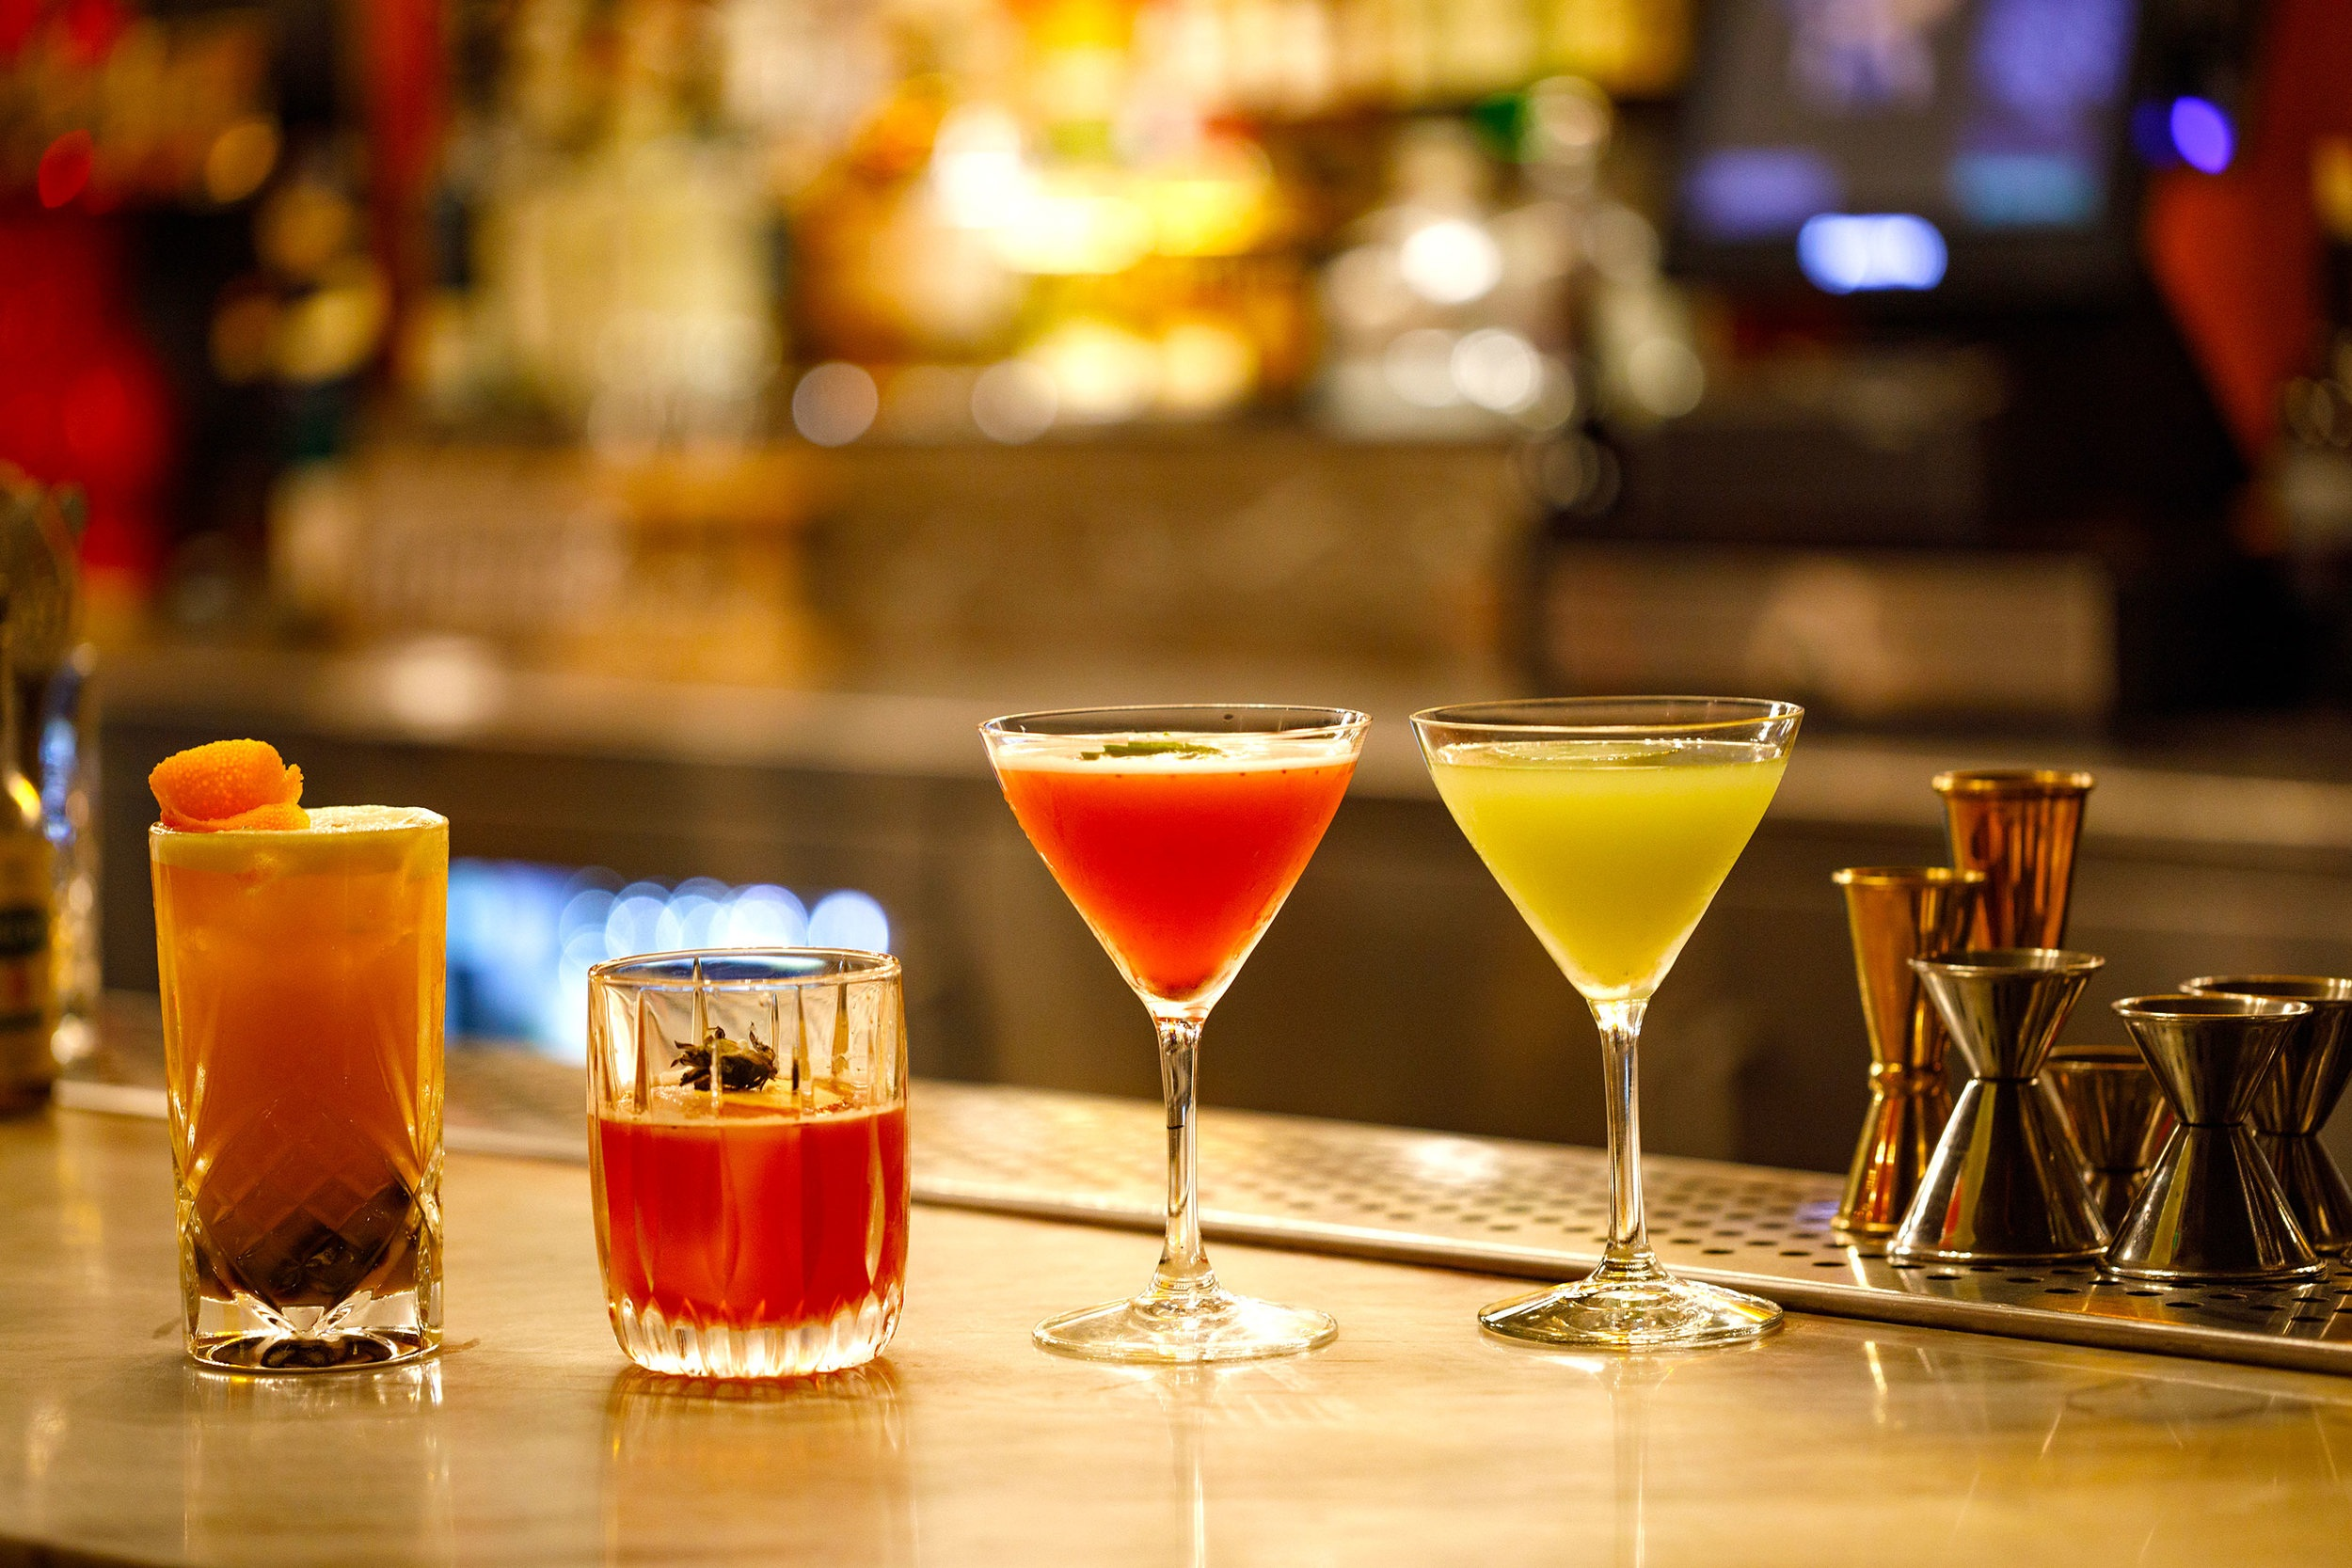 Topsy's Cocktails